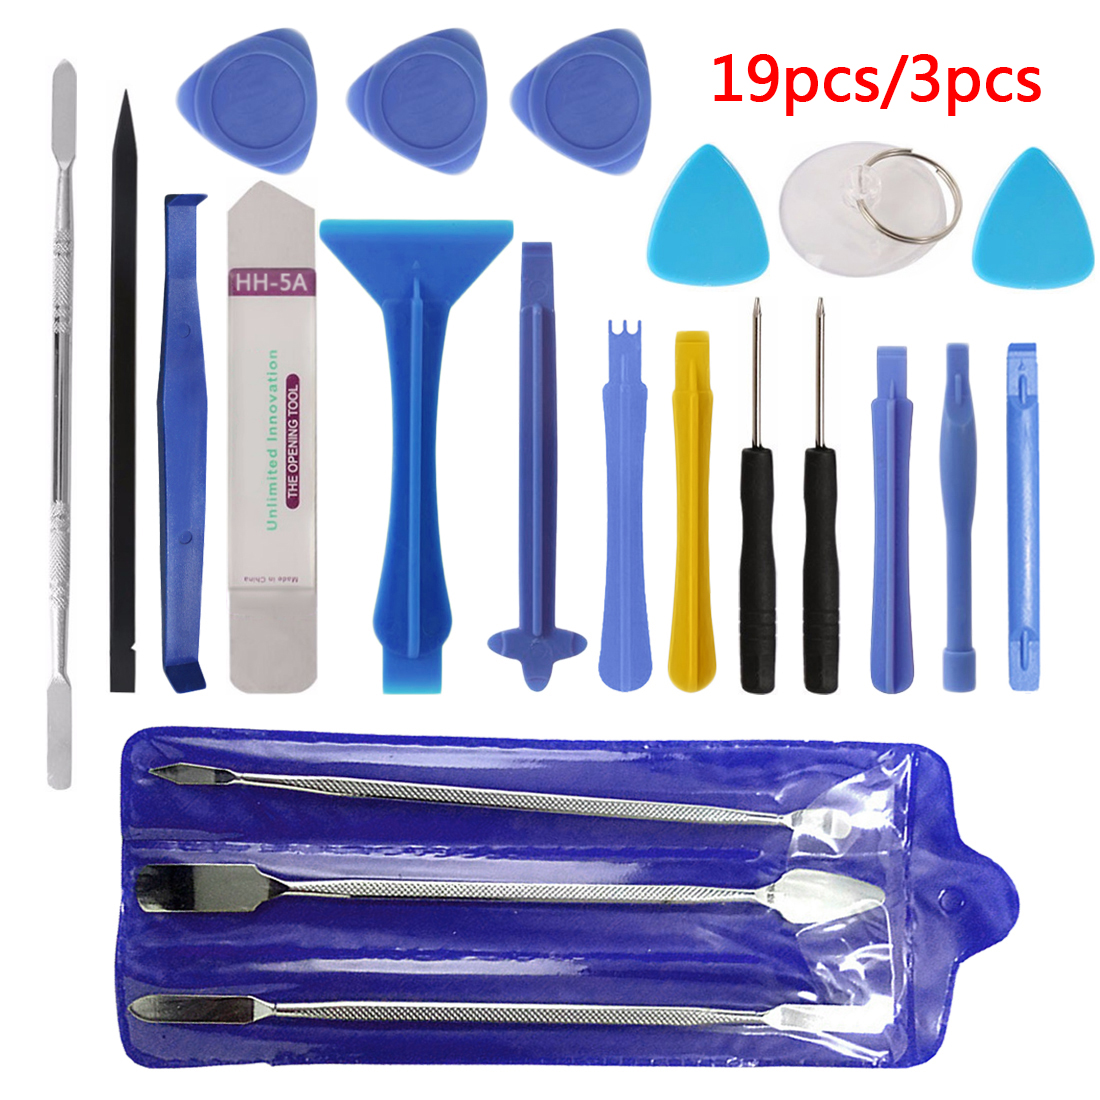 Samsung Ewparts 24 in 1 Uniersal Screwdriver Set Screen Removal Opening Repair Tool Kit for iPhone Motorola Sony LG iPad Tablets /& Other Devices